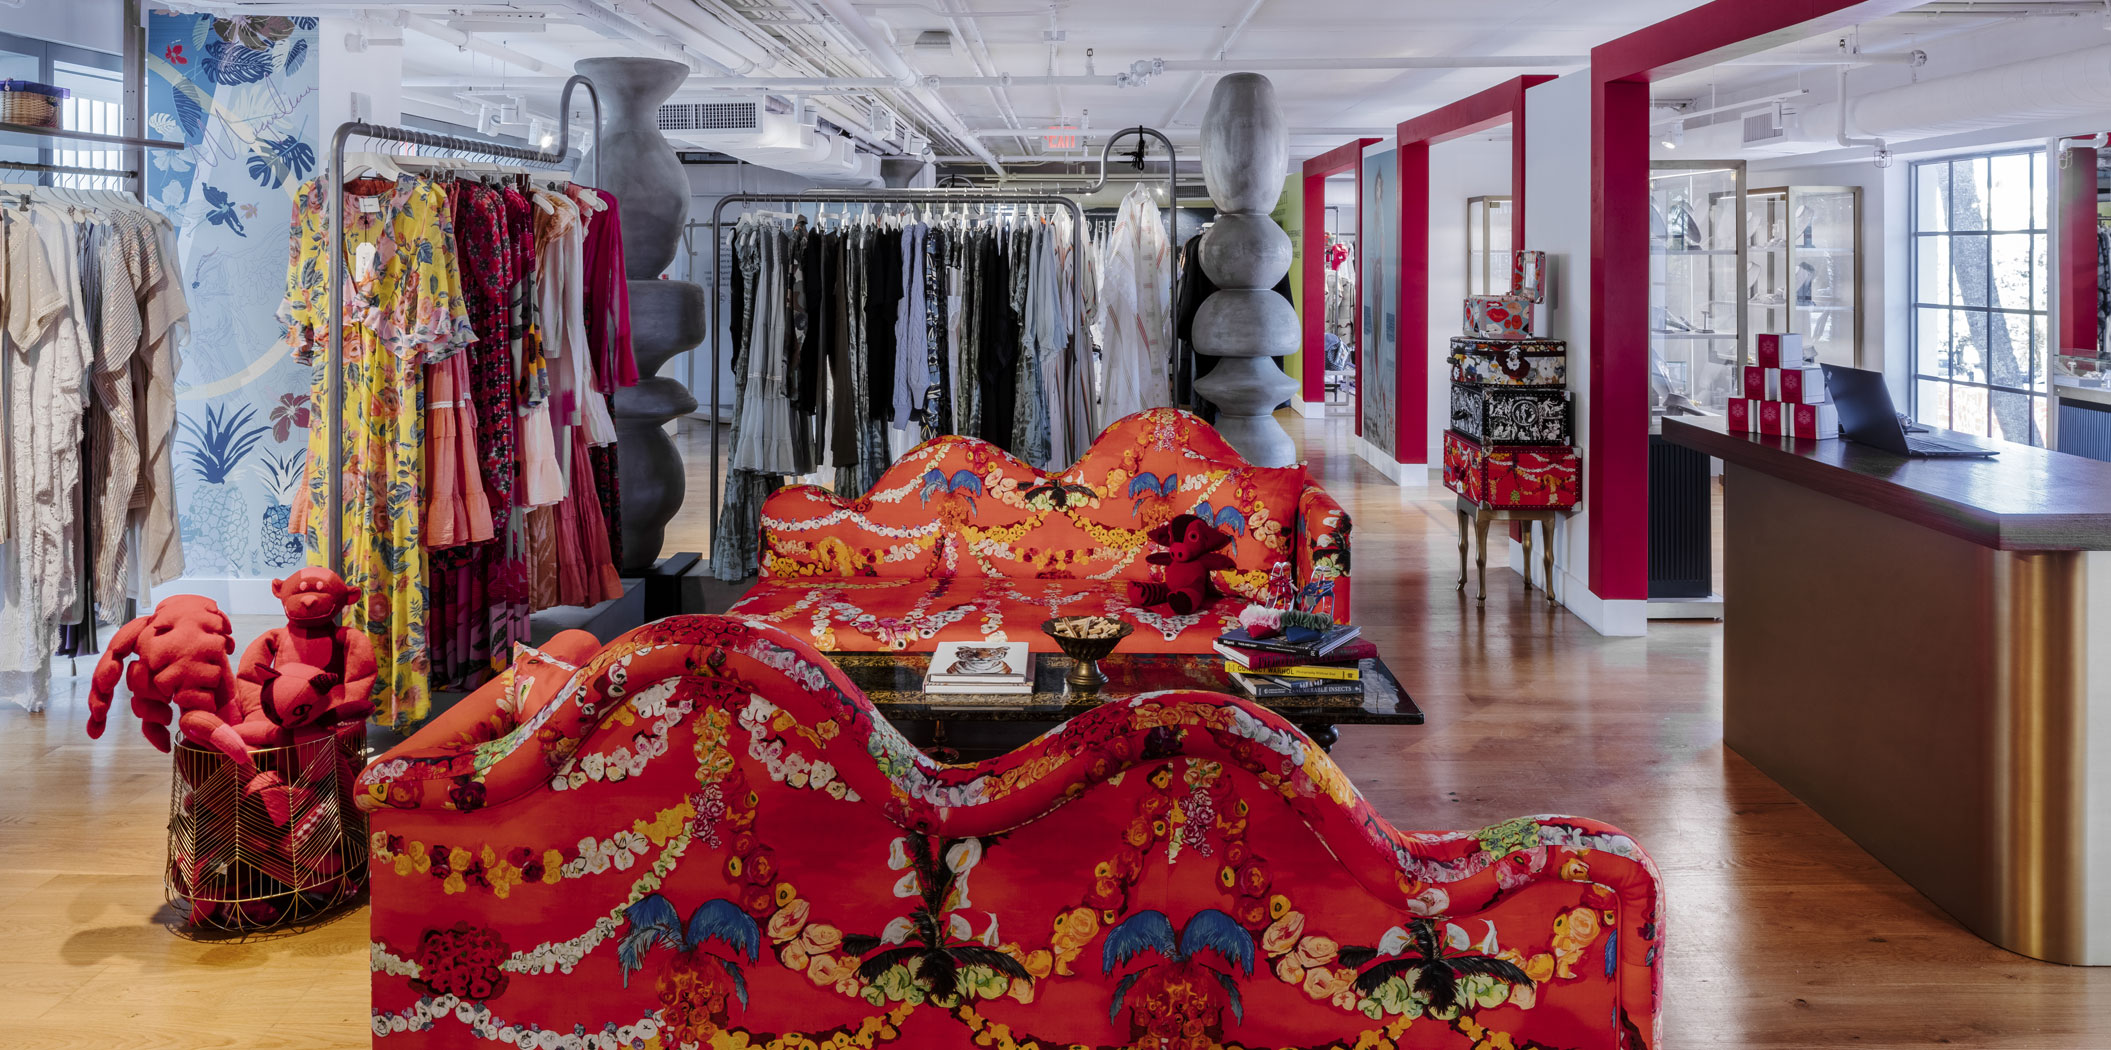 FAENA_BAZAAR_JAN2019_054-HDR-Edit_FULL-RES.jpg